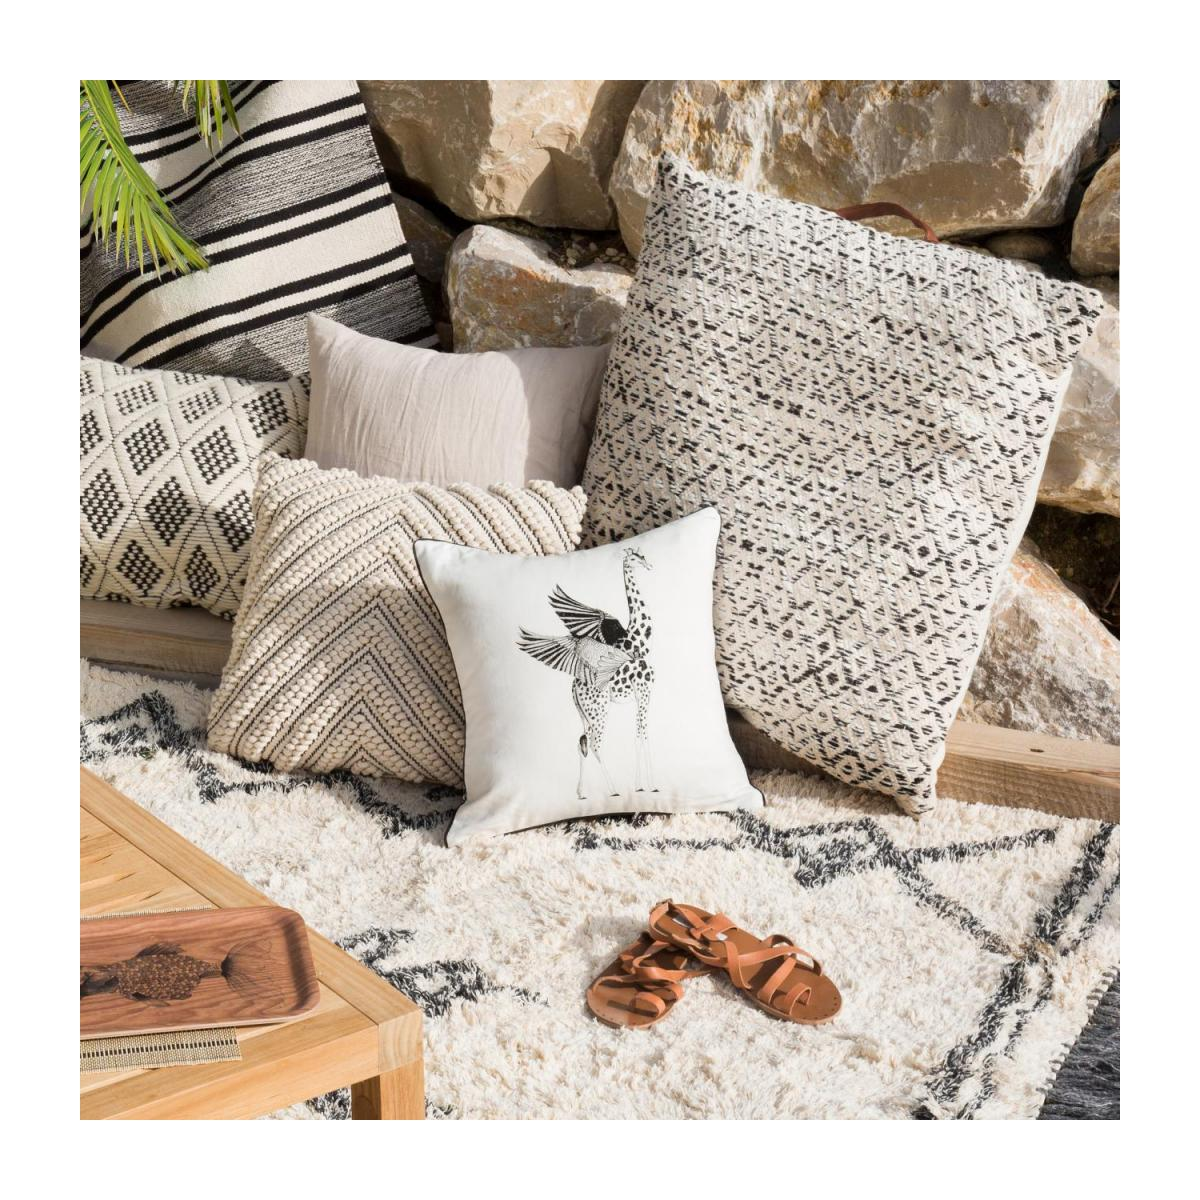 Cotton Floor Cushion 75x75cm Black and White  n°5